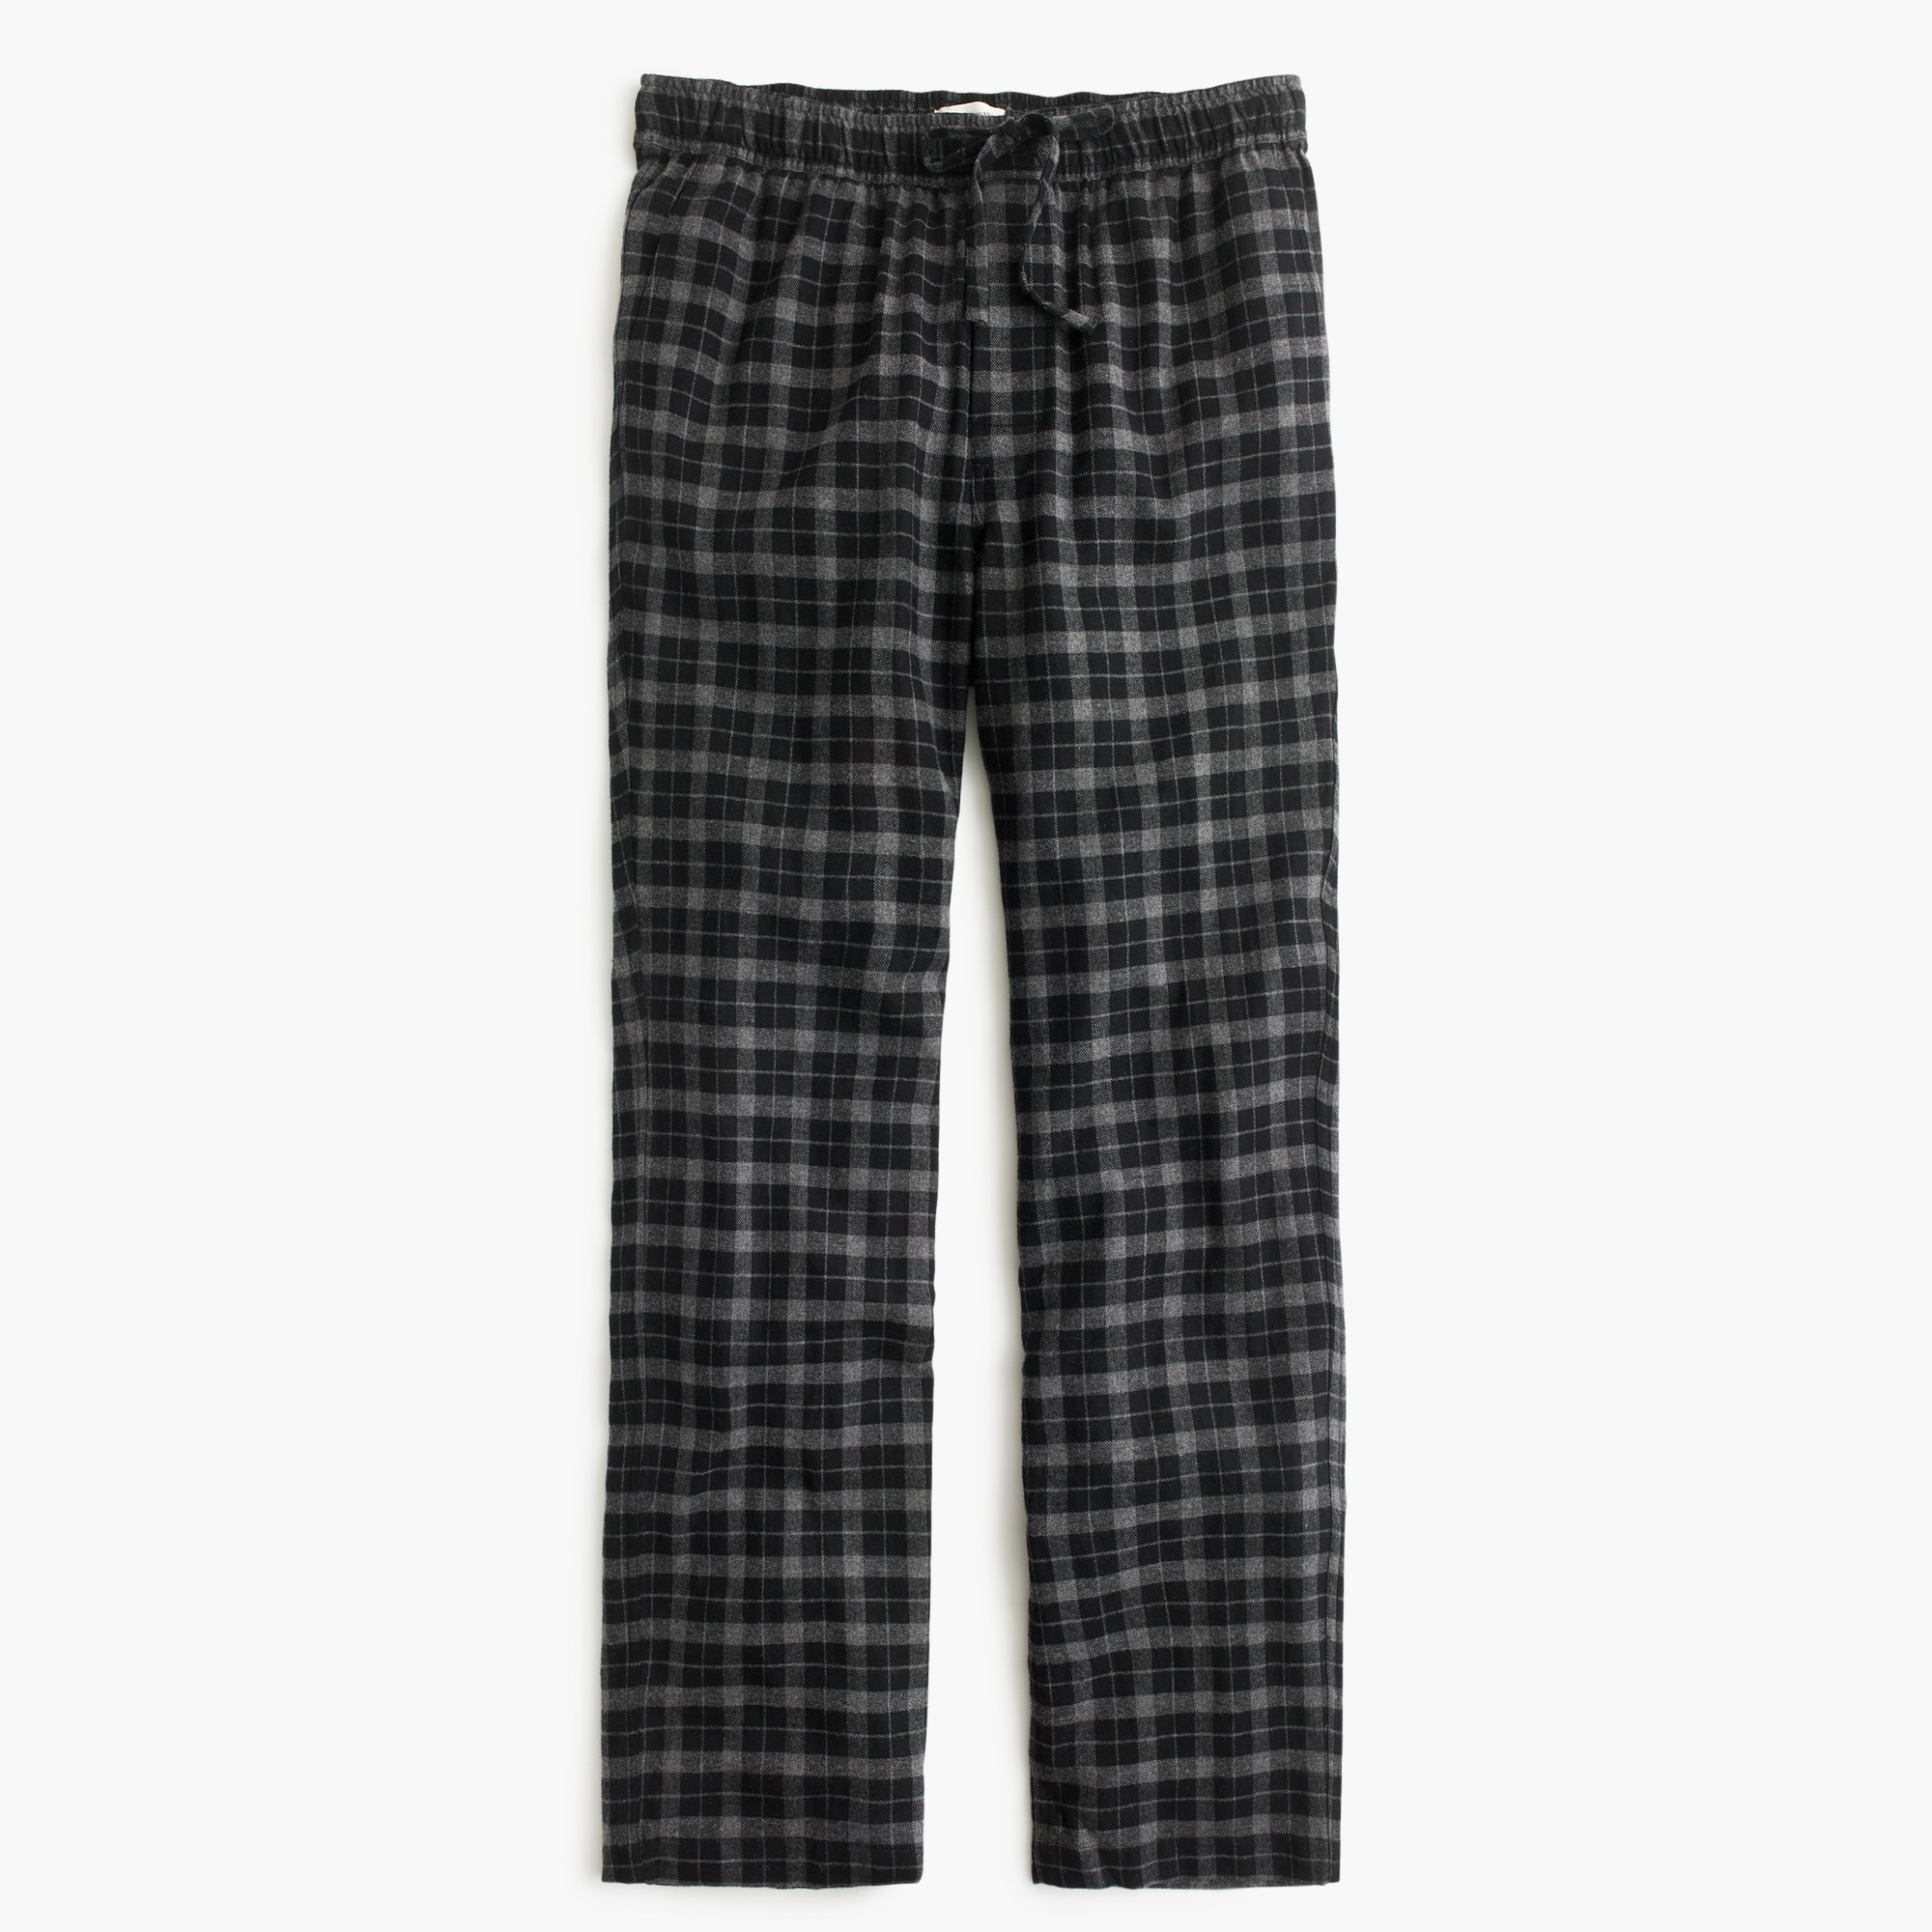 cotton lounge pant in charcoal plaid : men pajamas